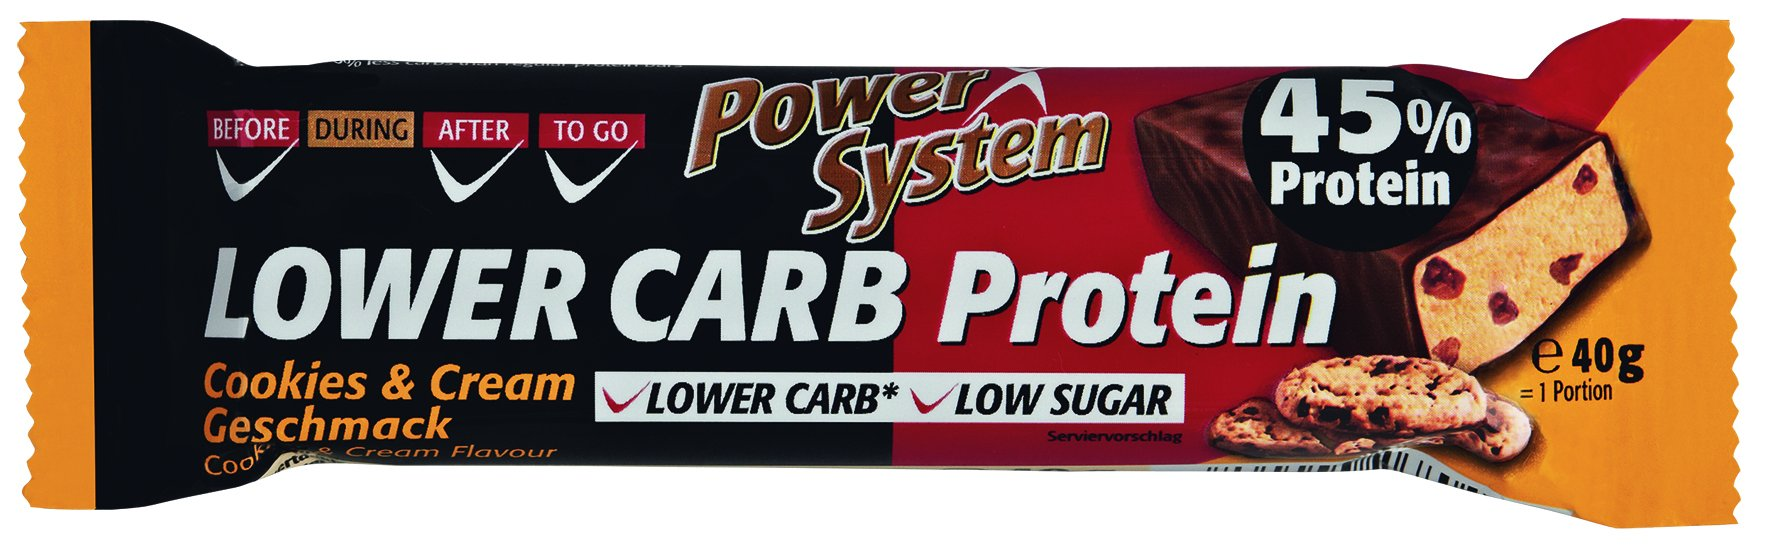 Power System LOWER CARB Cookies & Cream Bar with 45% Protein 40g